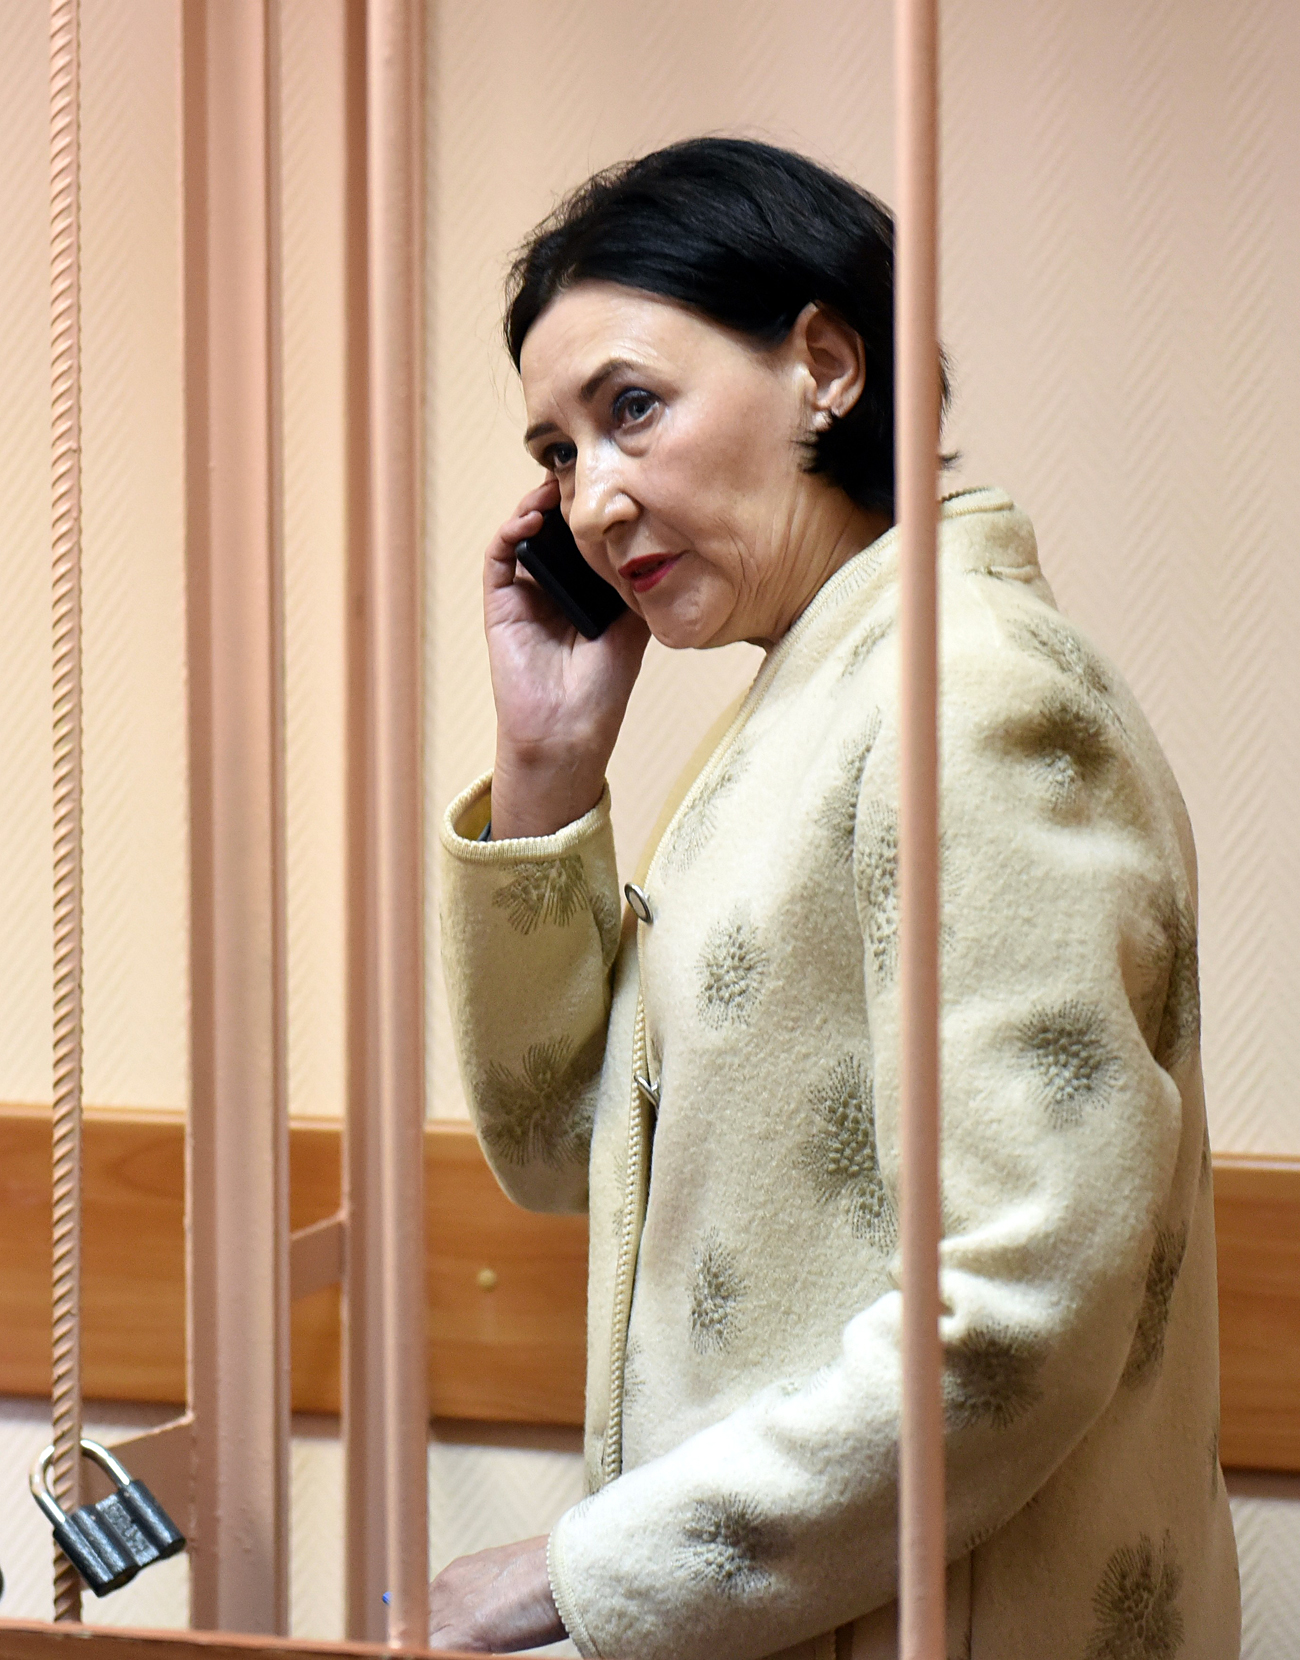 Natalya Grishkevich was detained in St. Petersburg on Feb. 18, 2010. Photo: Grishkevich in court. Source: Kommersant